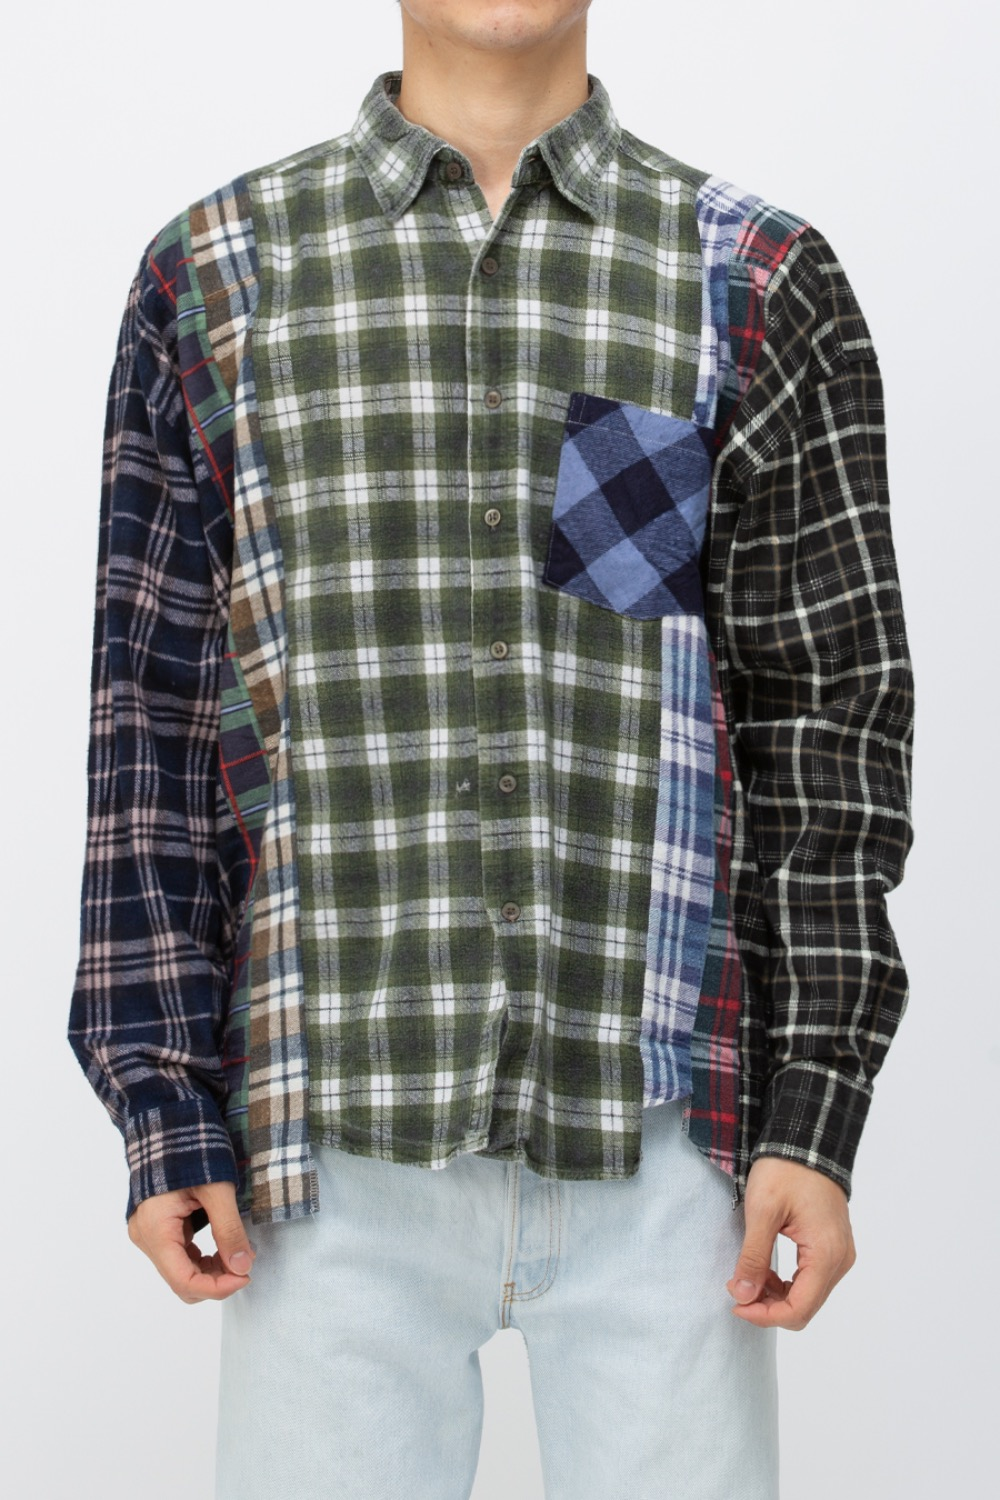 (WIDE-4)REBUILD BY NEEDLES FLANNEL SHIRT - 7CUTS WIDE SHIRT